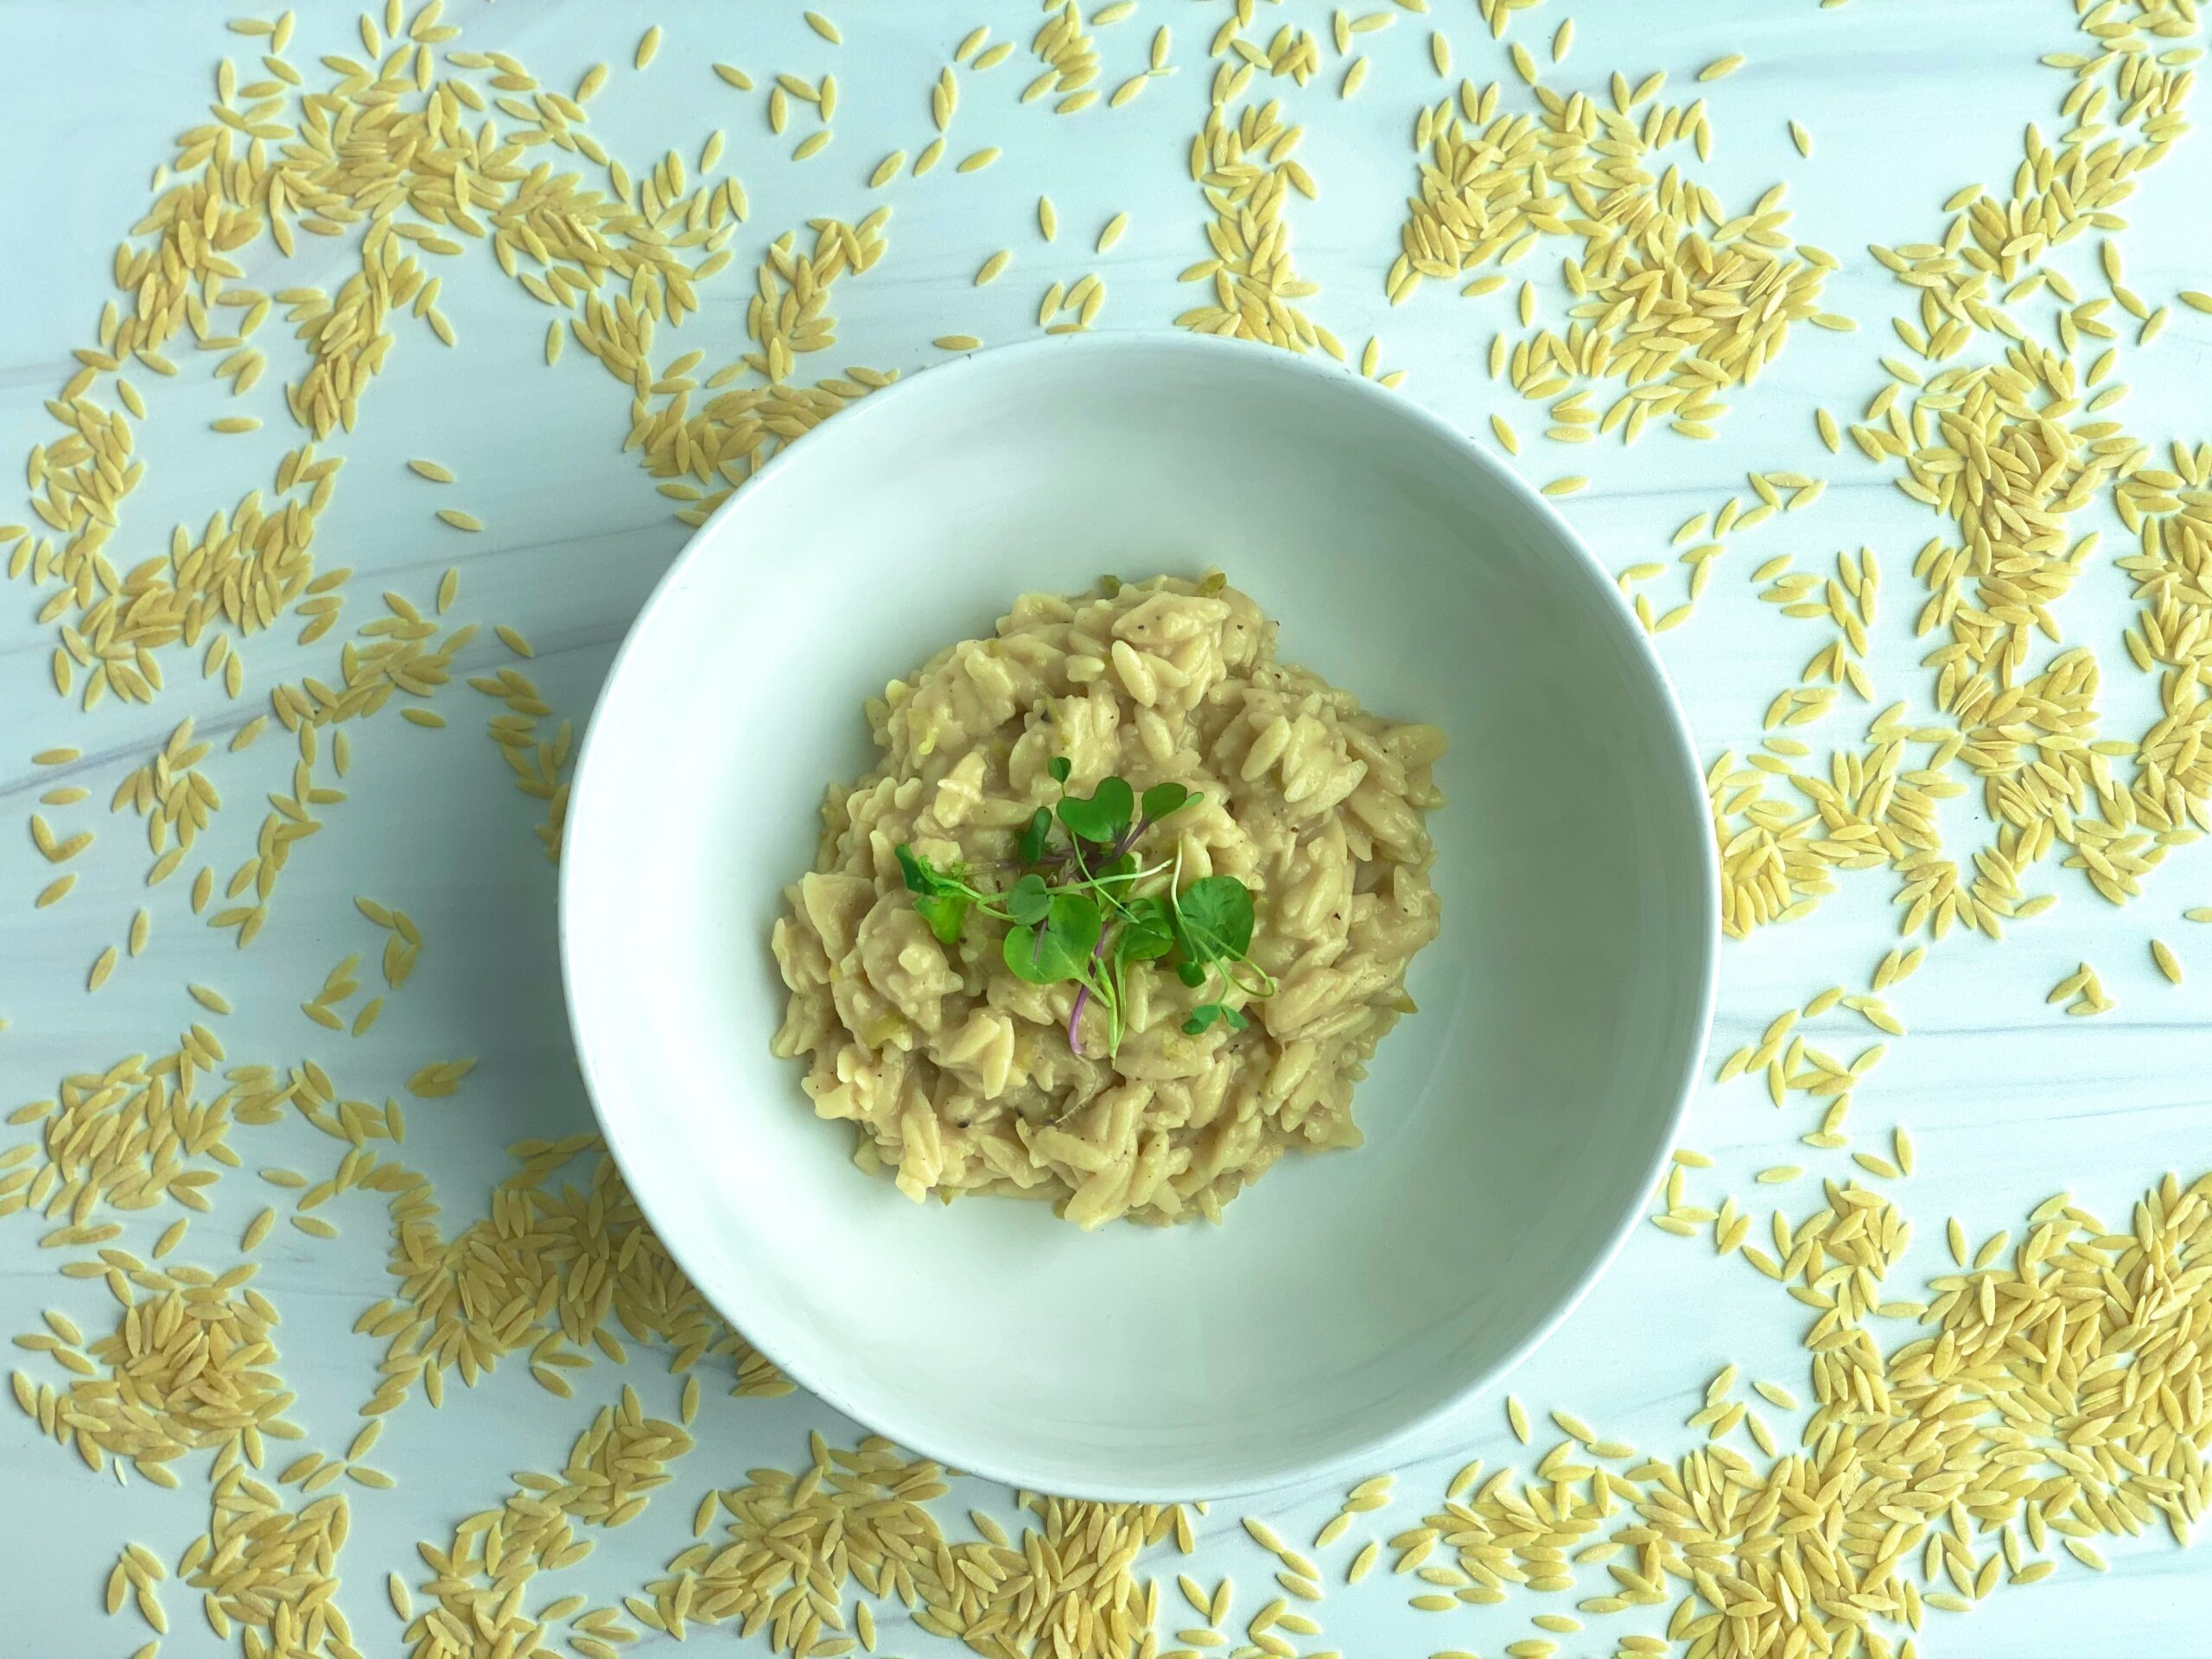 An image of a bowl of orzo pasta surrounded by uncooked orzo